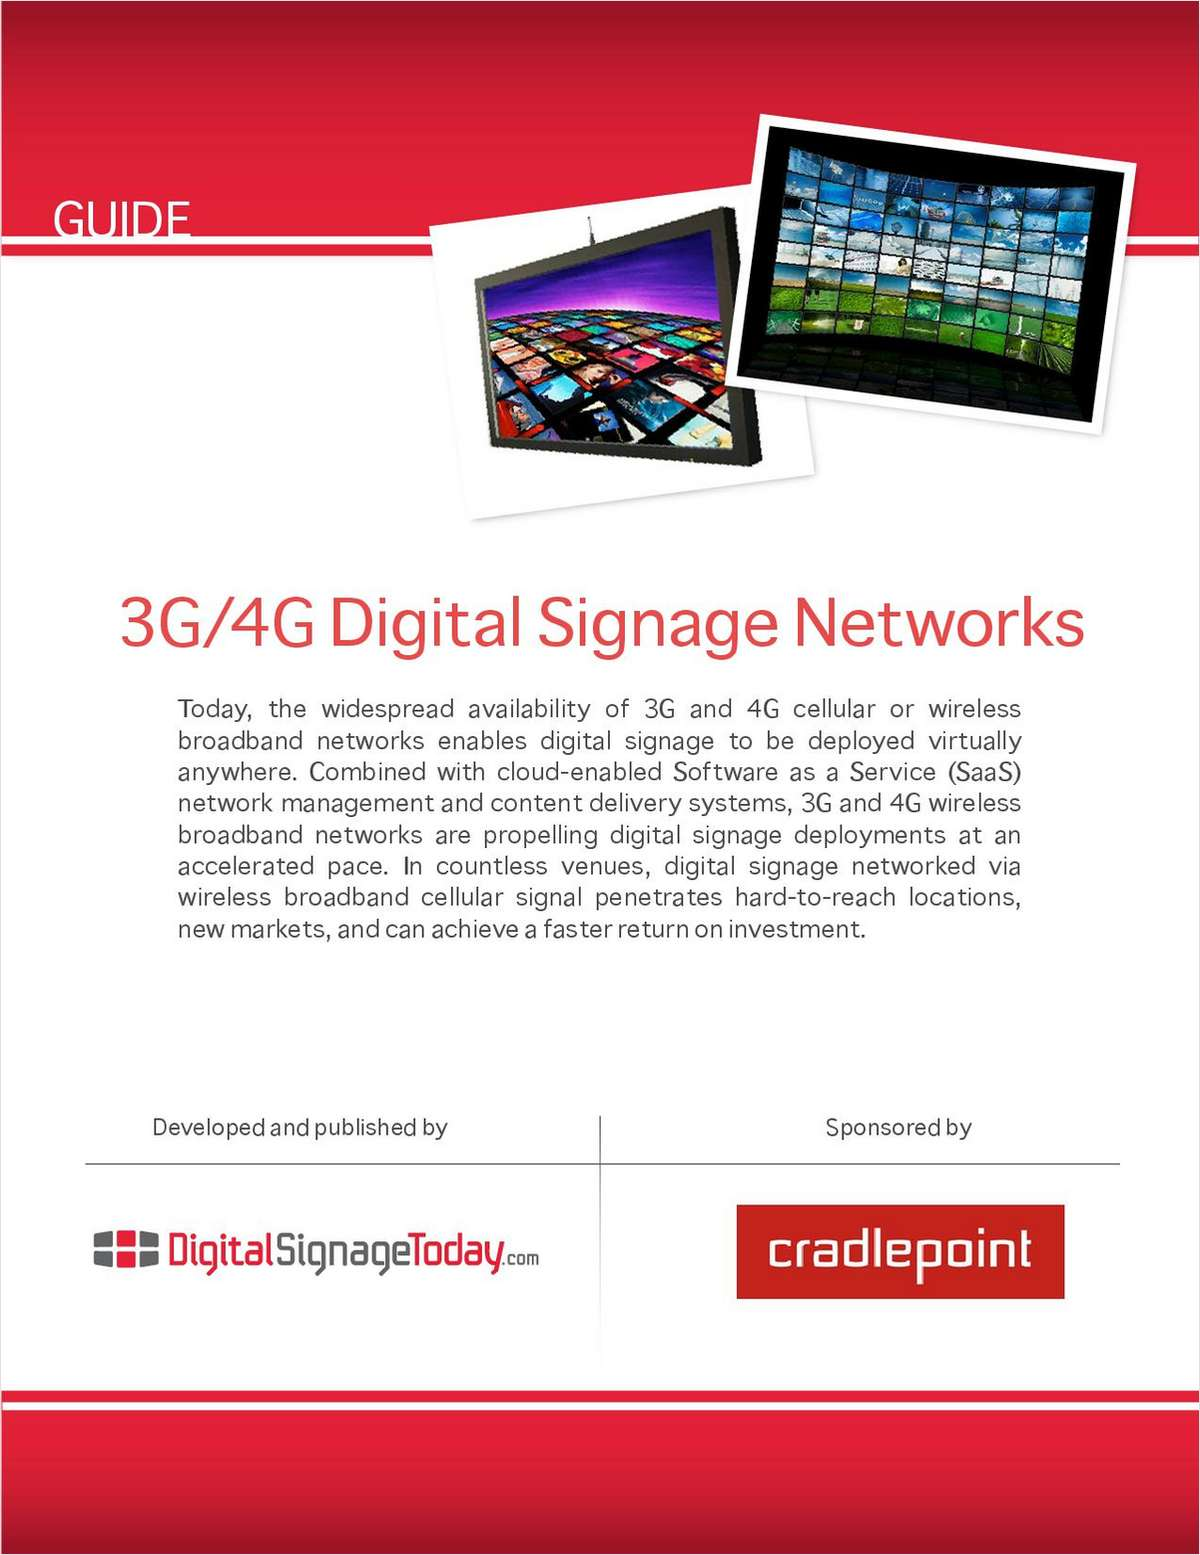 3G/4G Digital Signage Guide